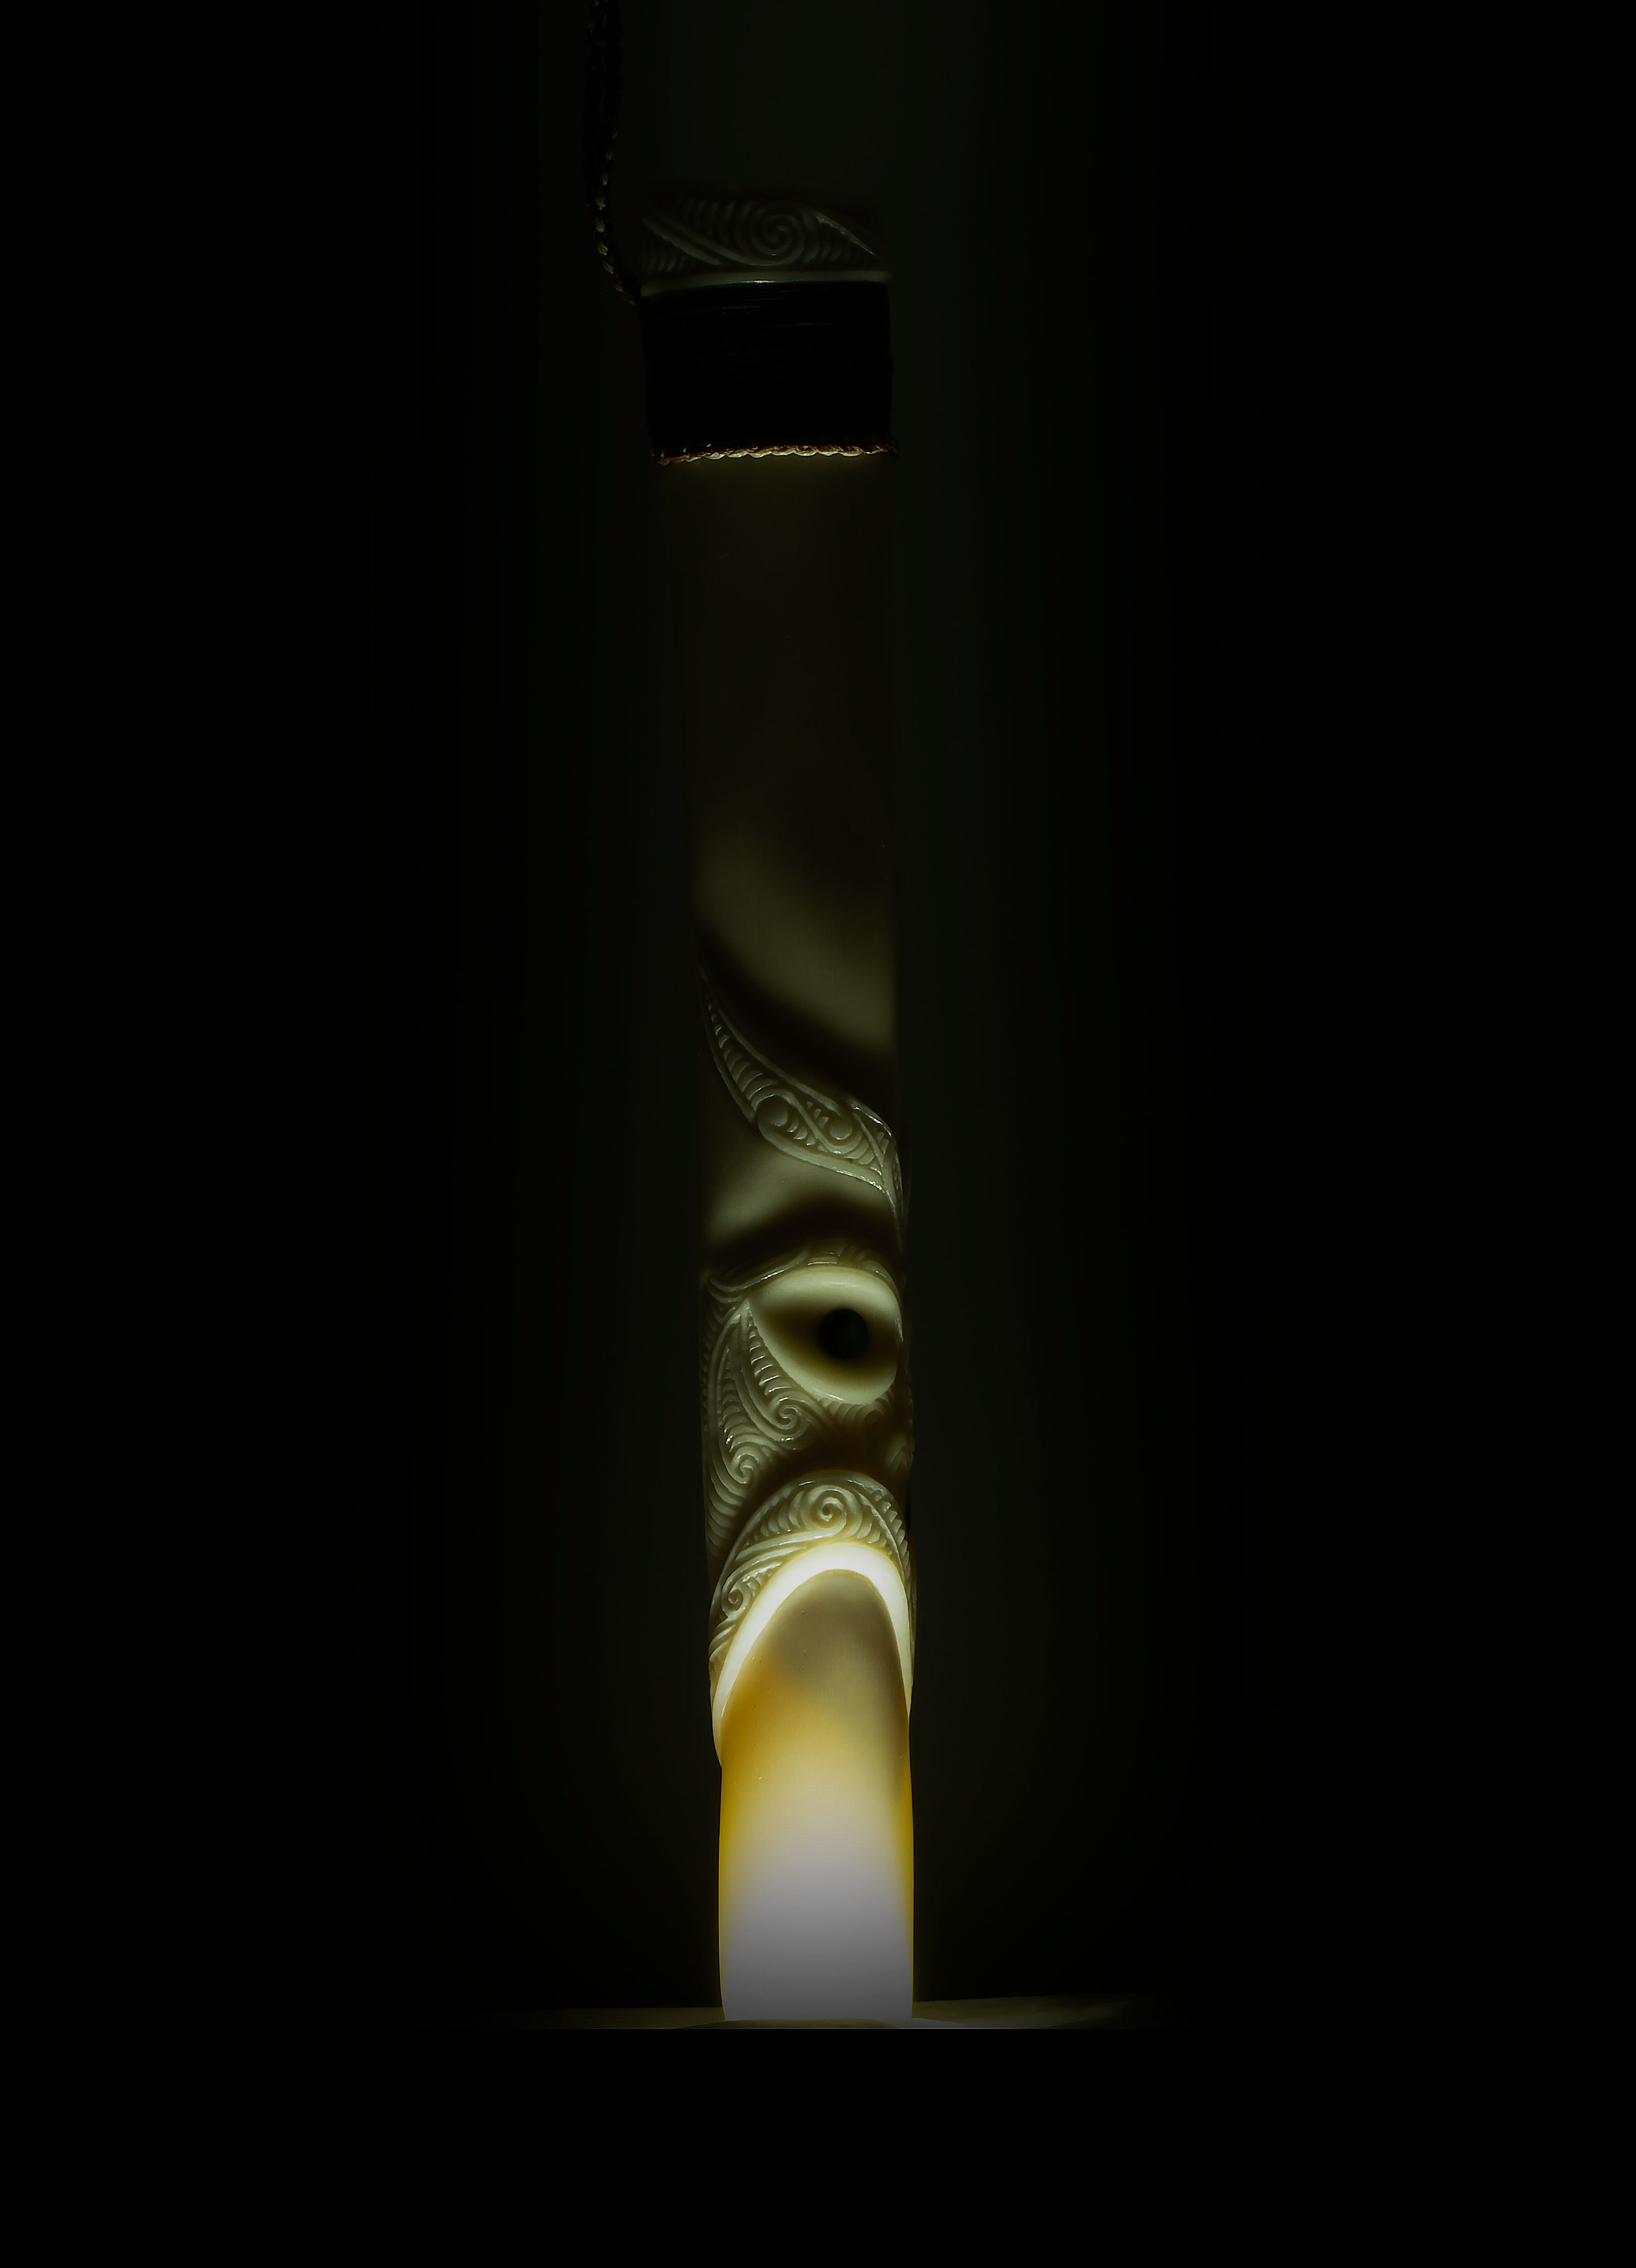 Kōauau - This special kōauau (small flute), is named te Manawa o Te Kore. It is a part of the Healing Sound series of Taonga.